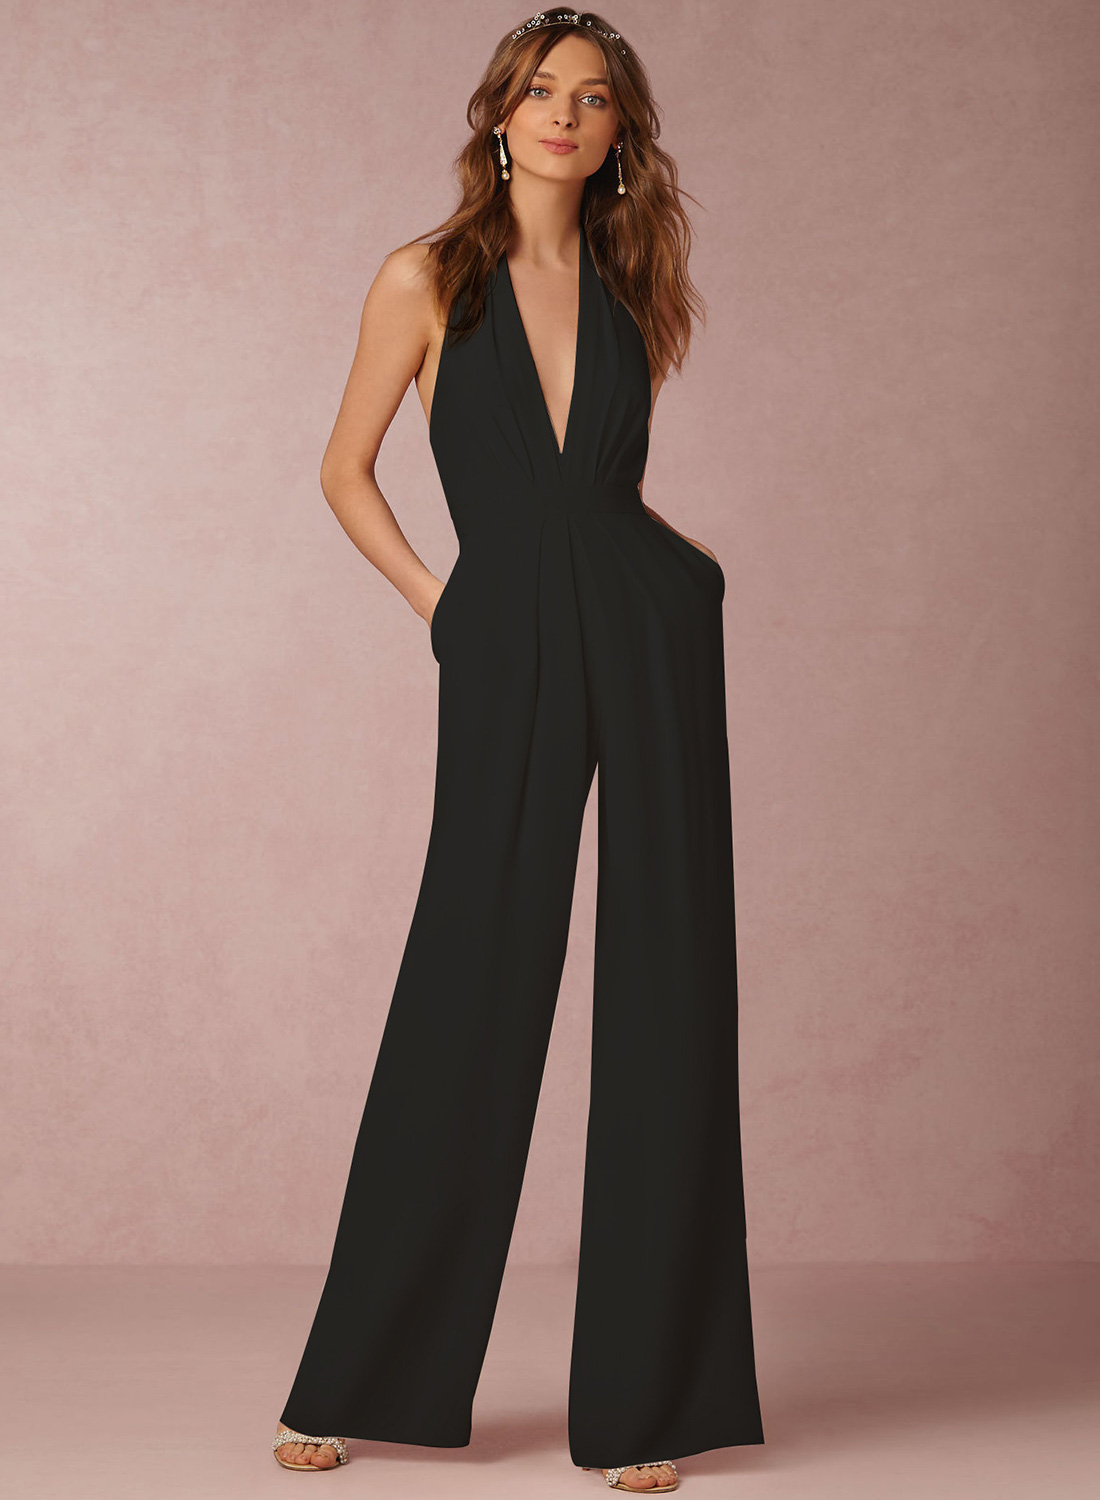 4 Latest Jumpsuits For All Body Shape - Fashion Unlock